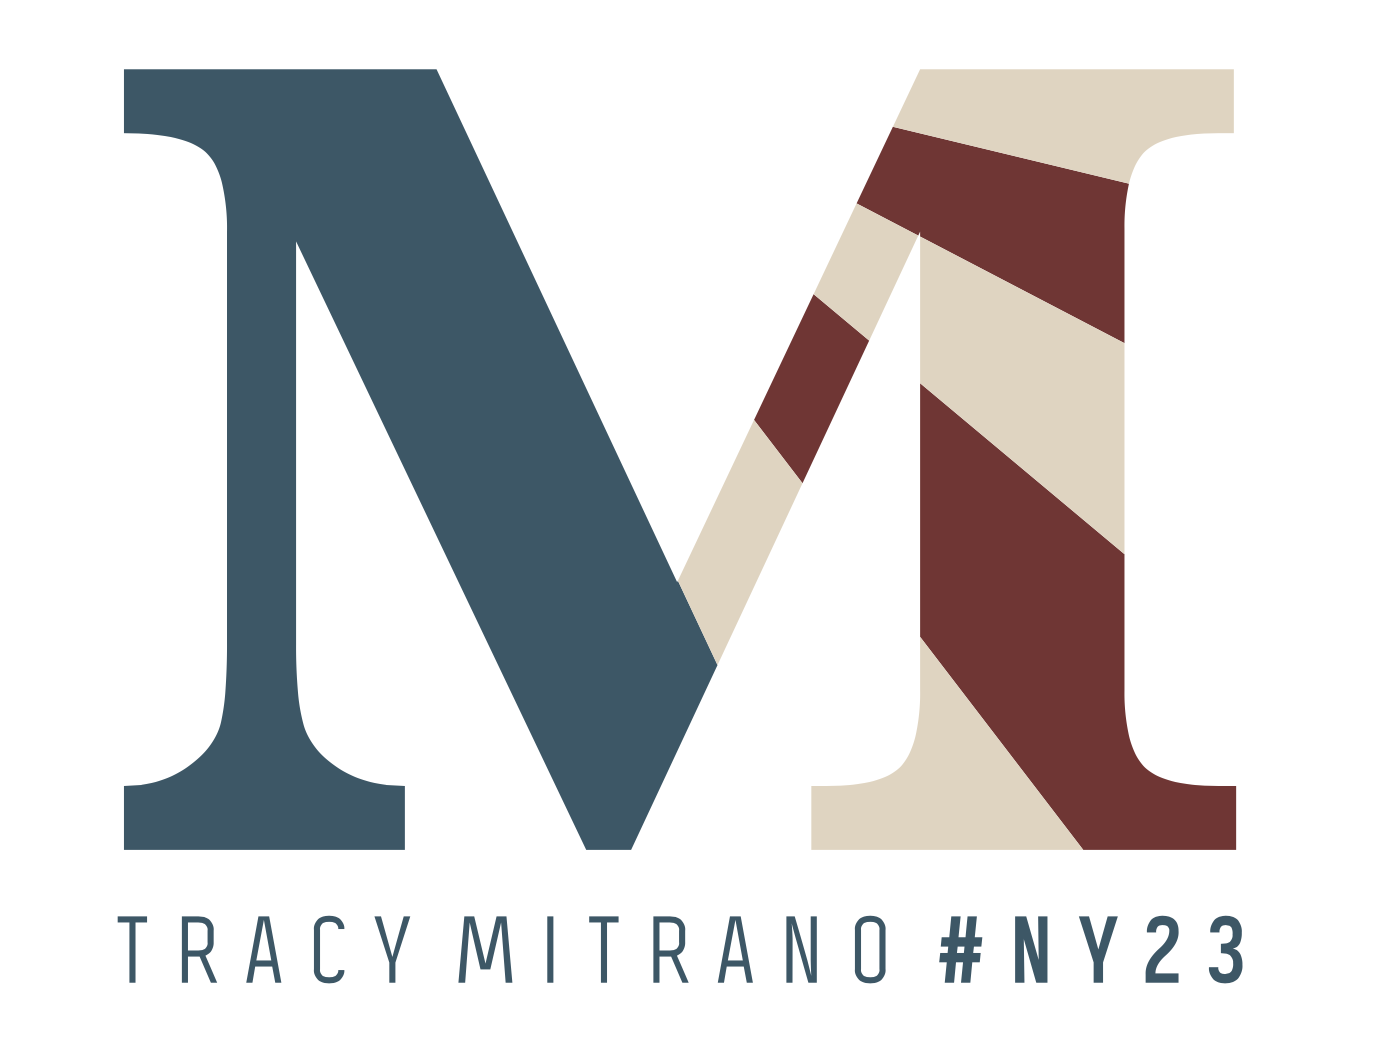 Tracy Mitrano for Congress #NY23